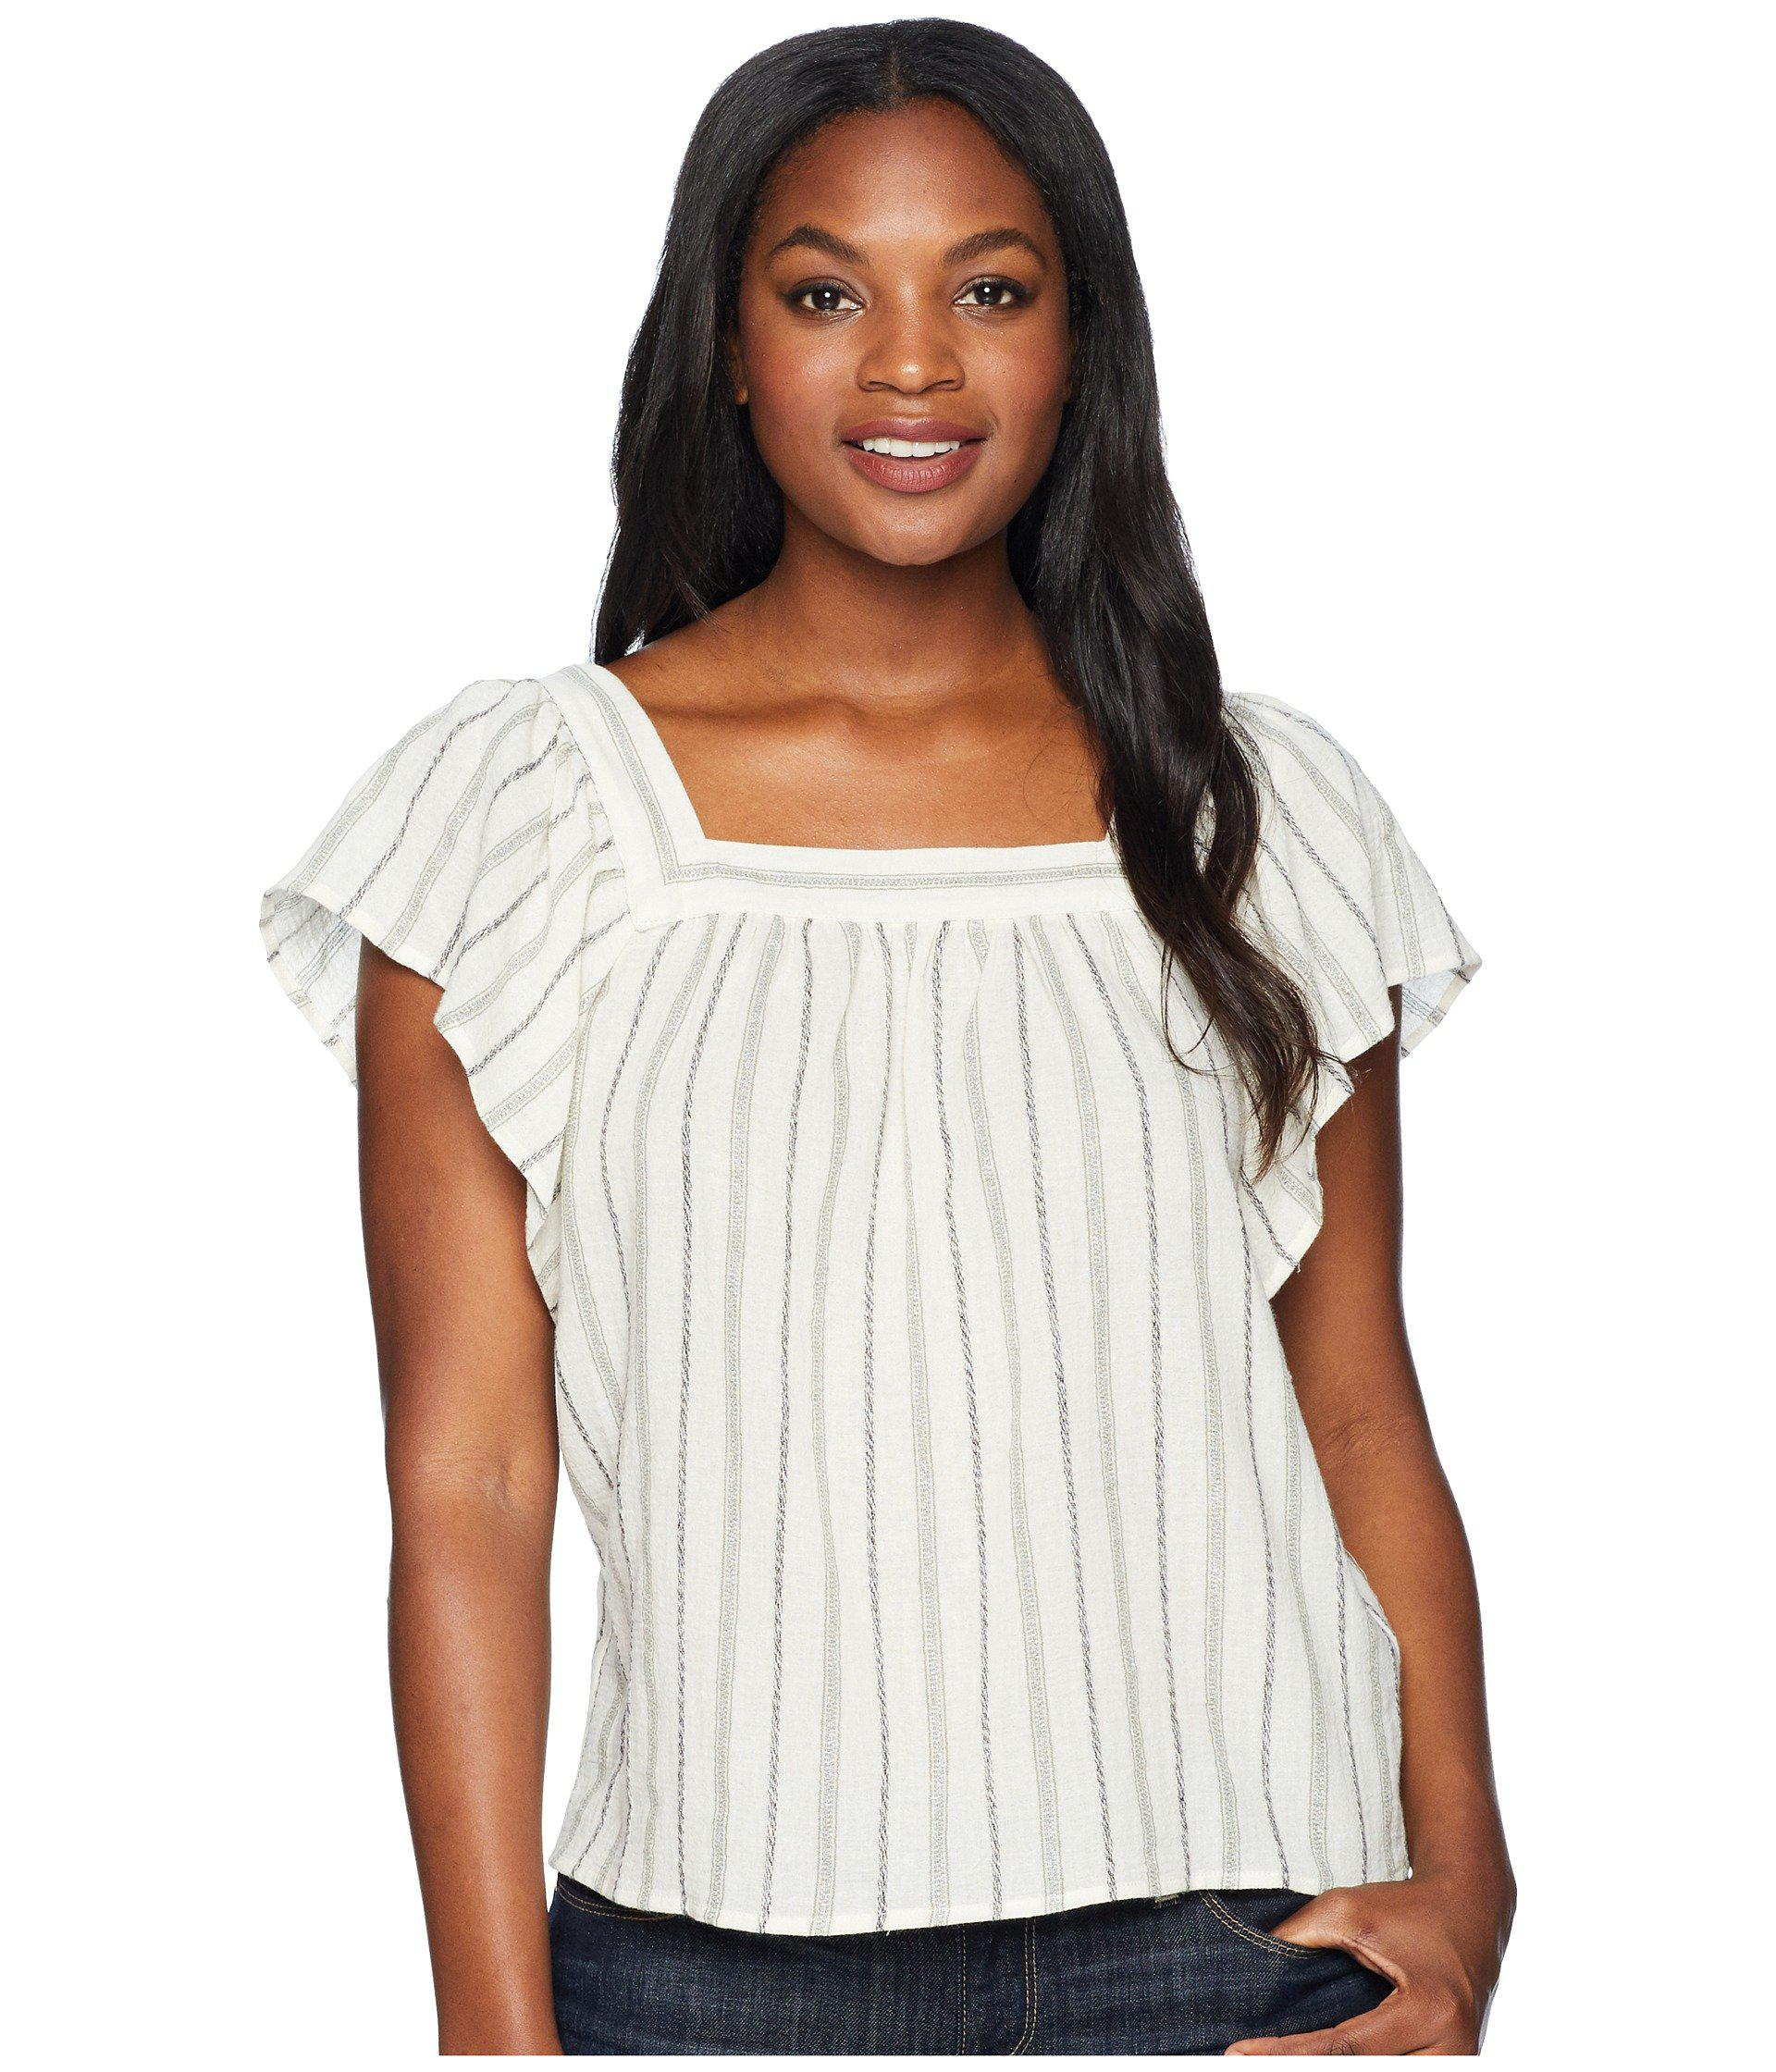 983589d7a14 Two By Vince Camuto. Women s White Metallic Stripe Ruffle Sleeve Blouse